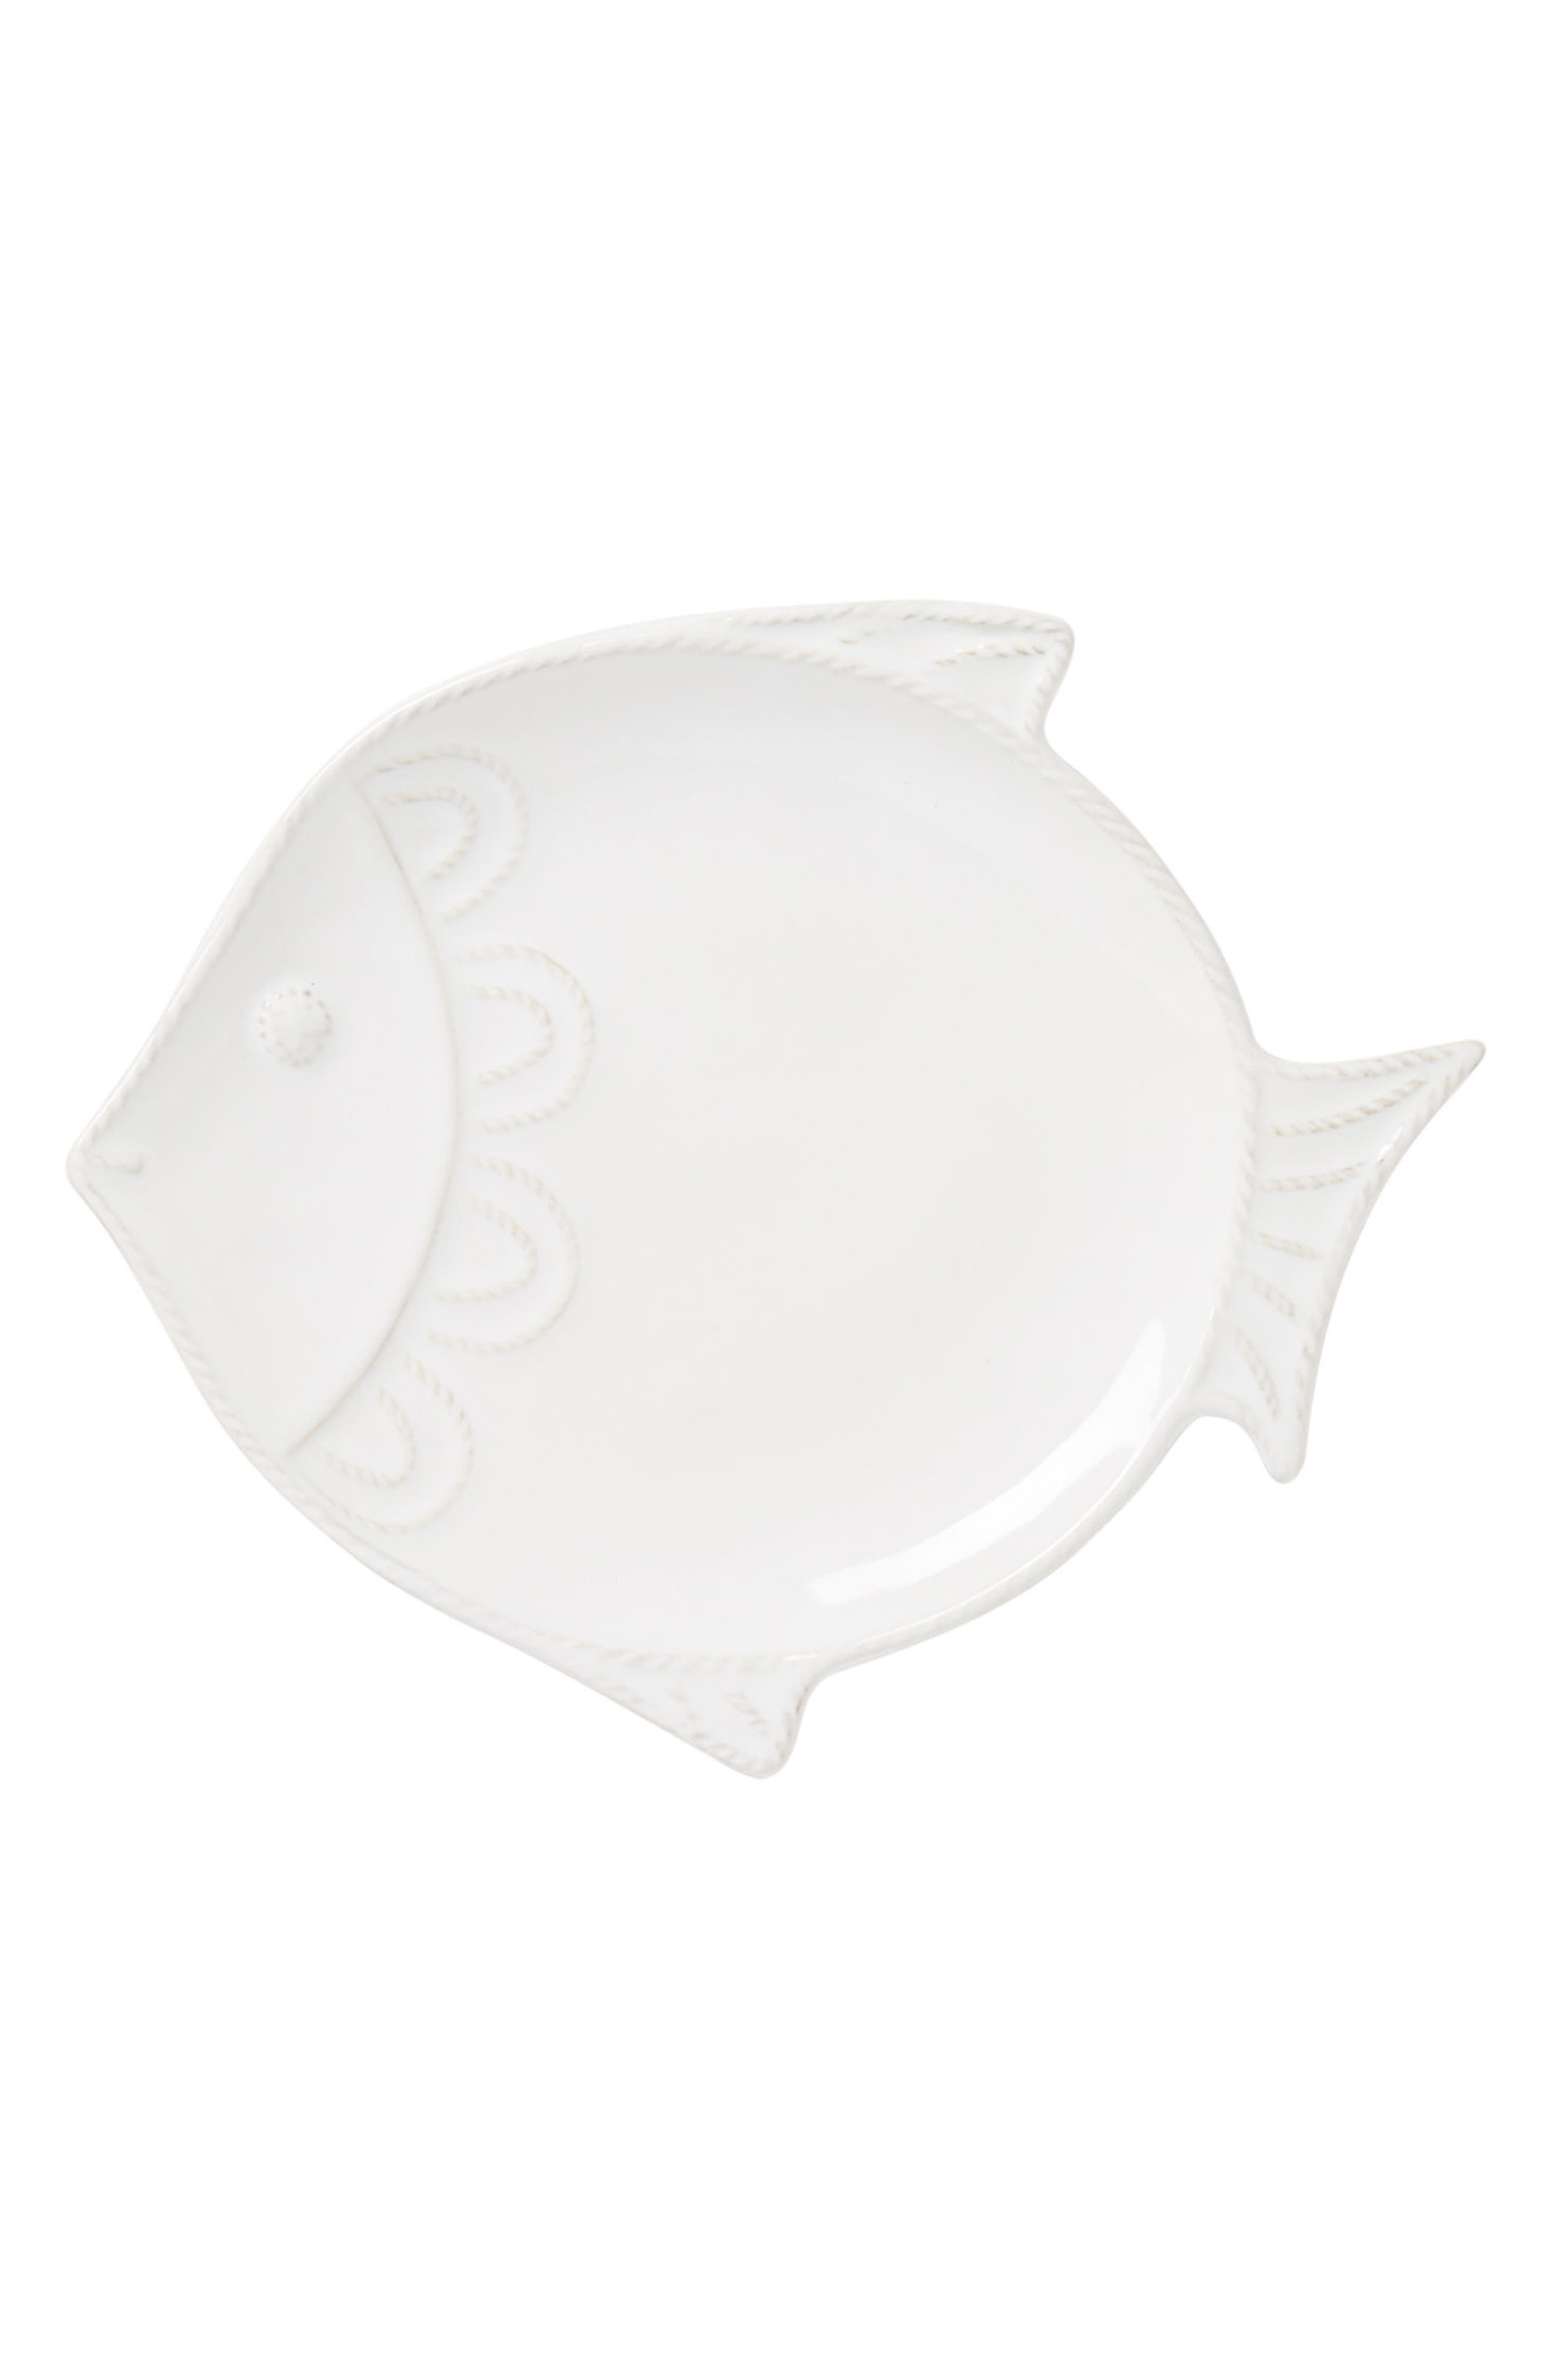 Berry & Thread Fish Salad Plate,                         Main,                         color, Whitewash